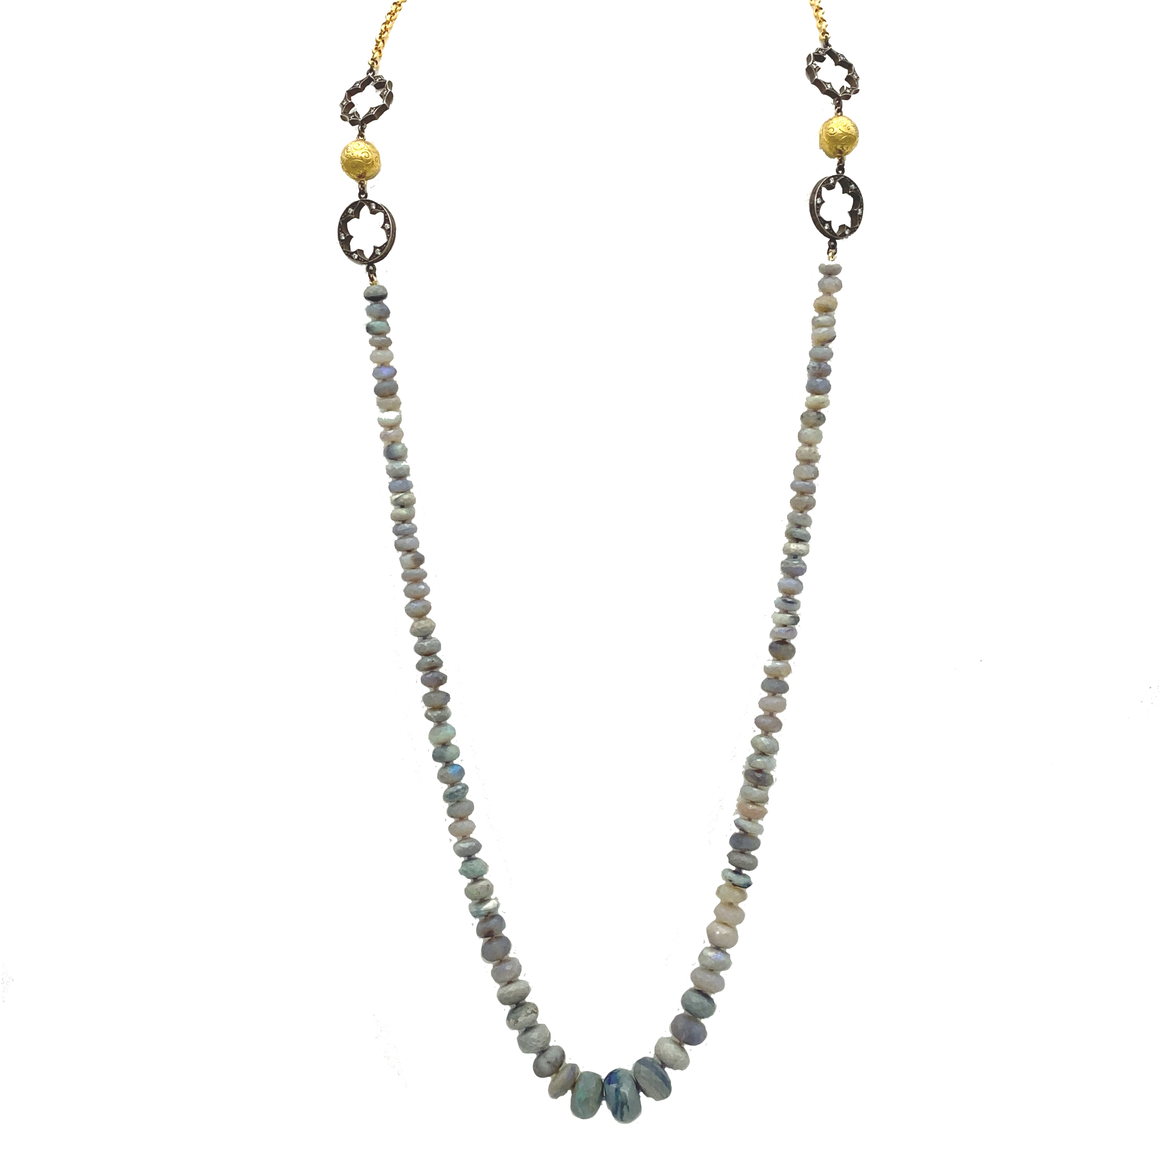 Australian Beaded Opal Necklace - Lesley Ann Jewels